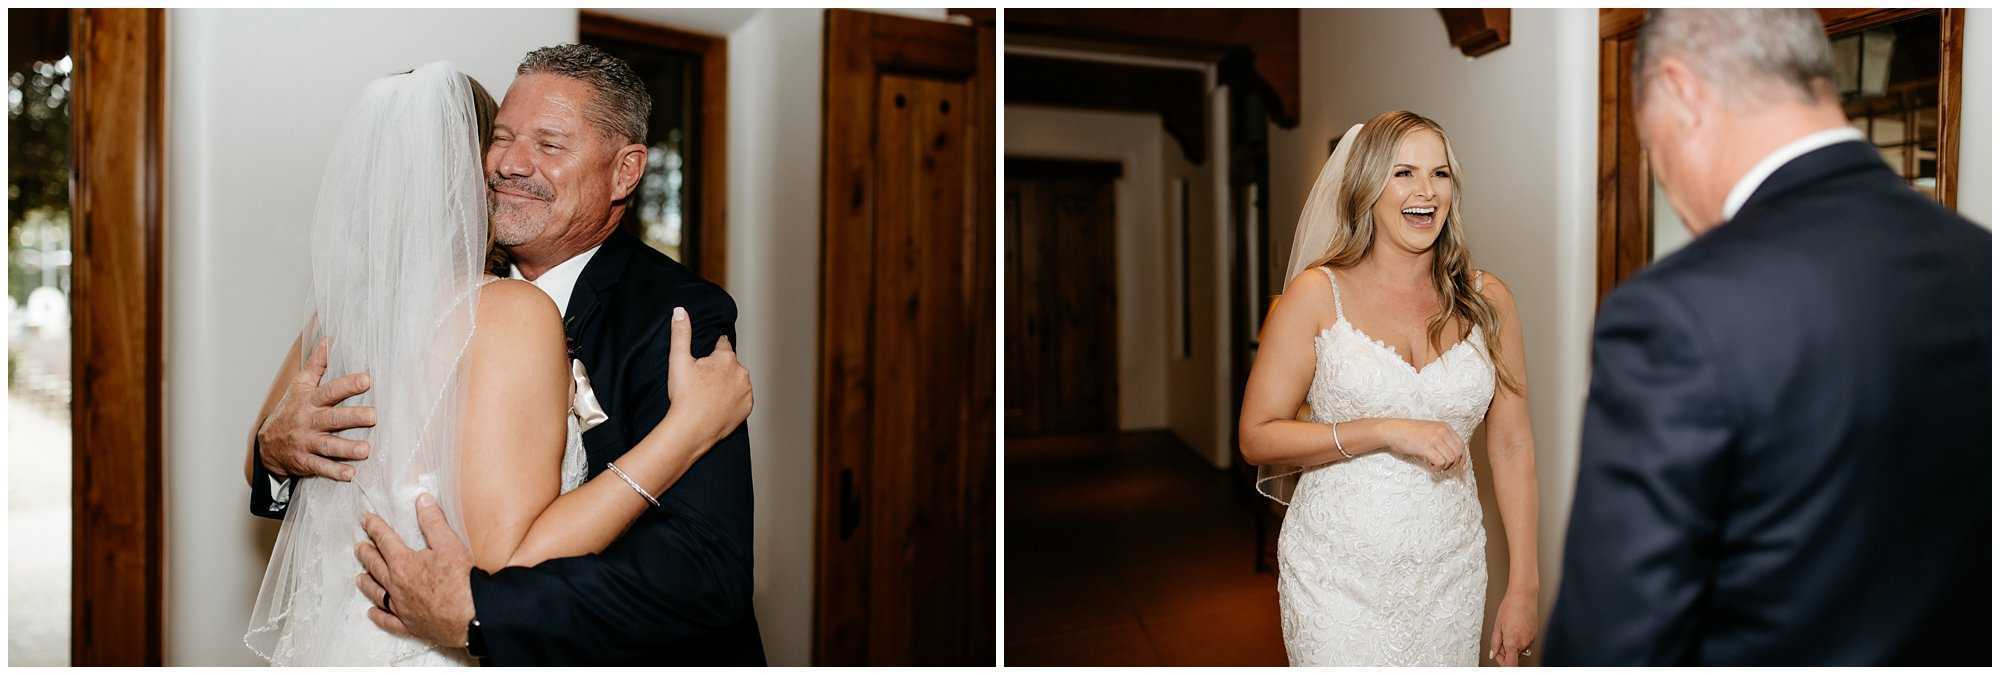 Arizona Wedding Photographer - Roberts Wedding_0009.jpg